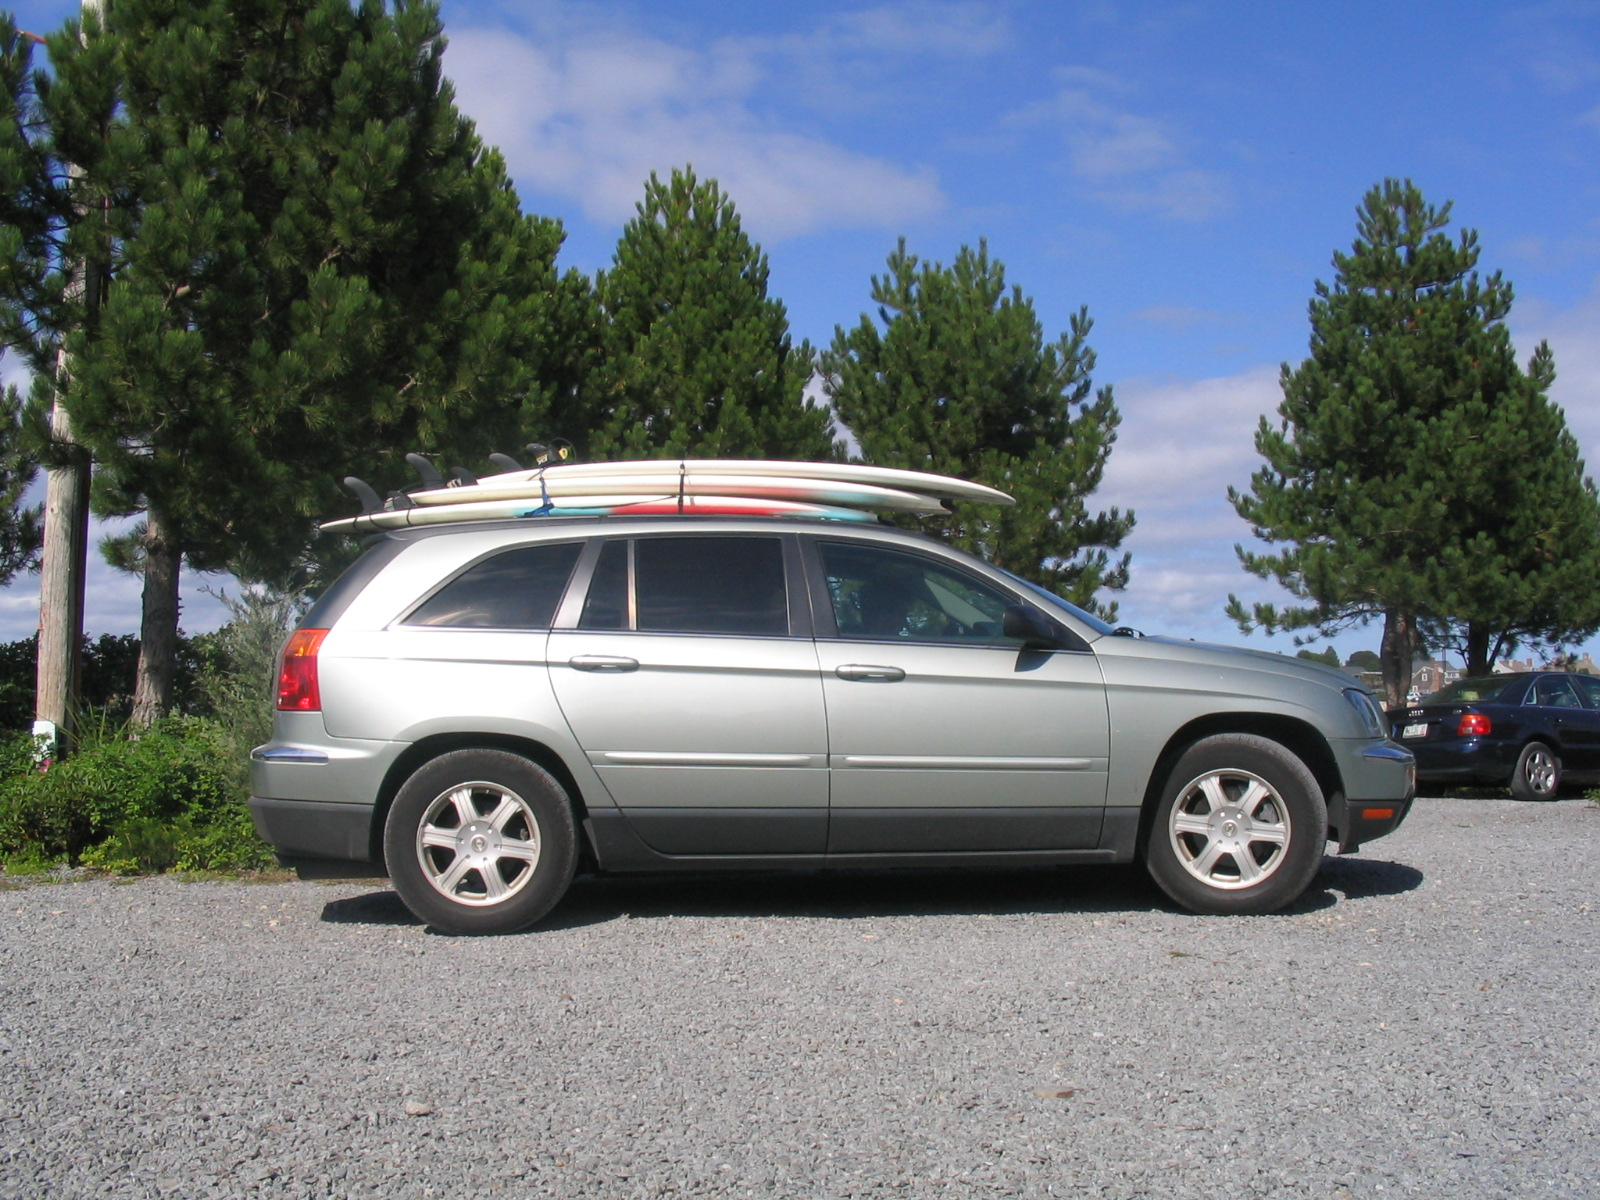 File:Chrysler Pacifica Side View.jpg - Wikipedia